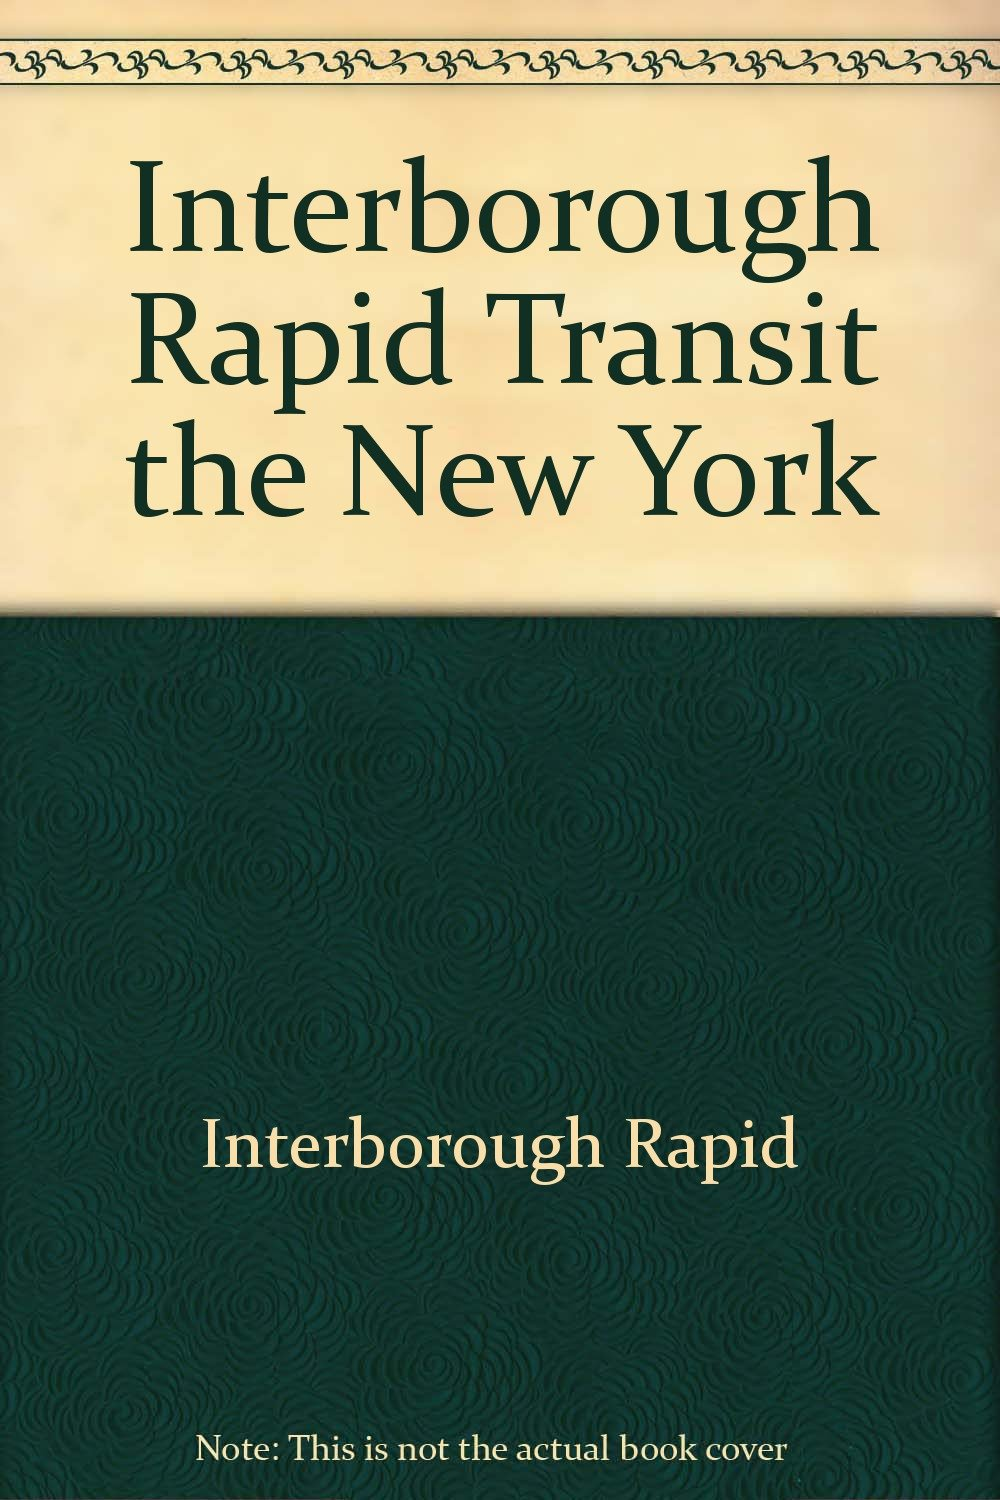 Interborough Rapid Transit the New York